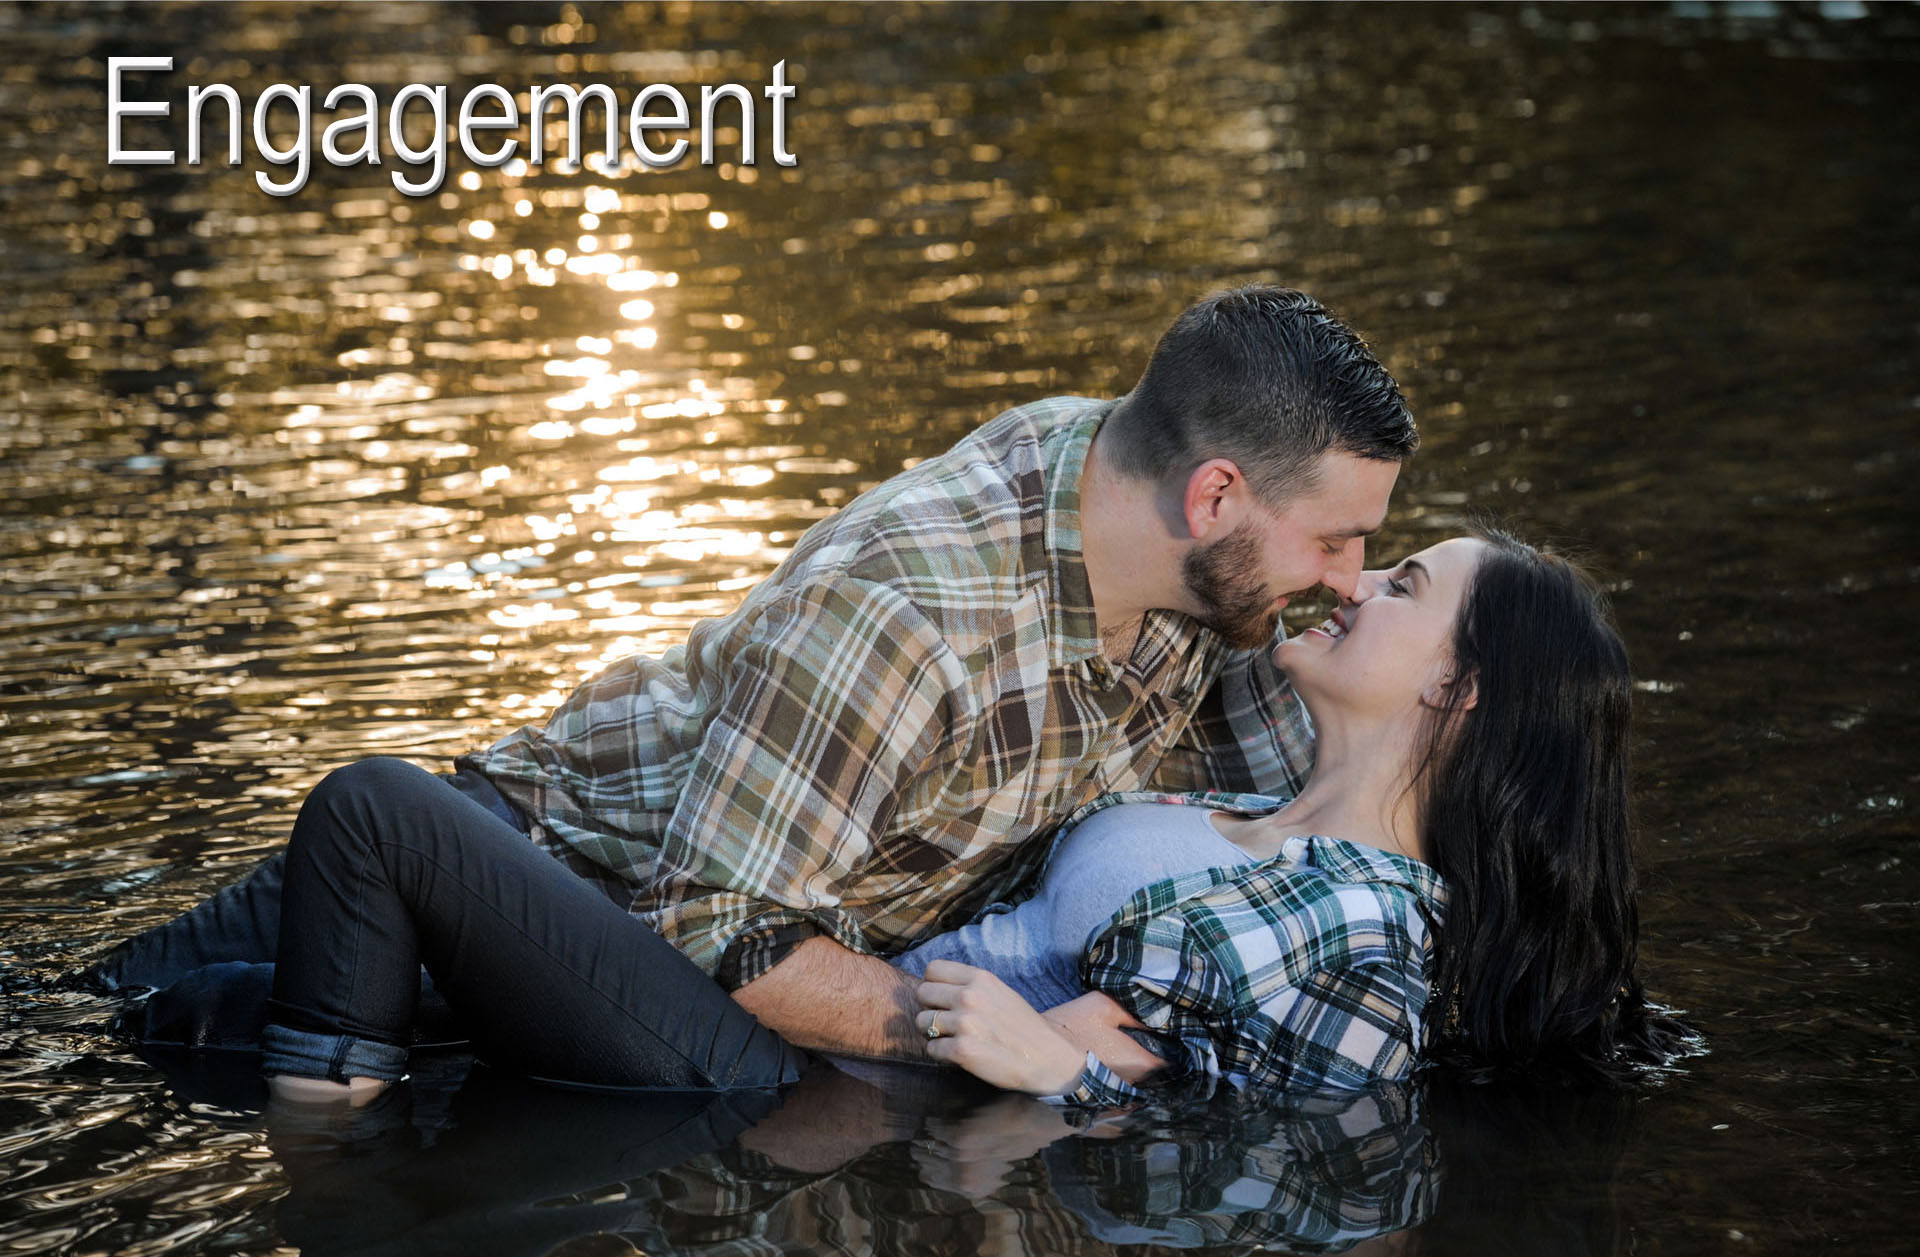 Best Detroit, Michigan engagement photography and photography for taking portraits to create sexy and intimate engagement photos.